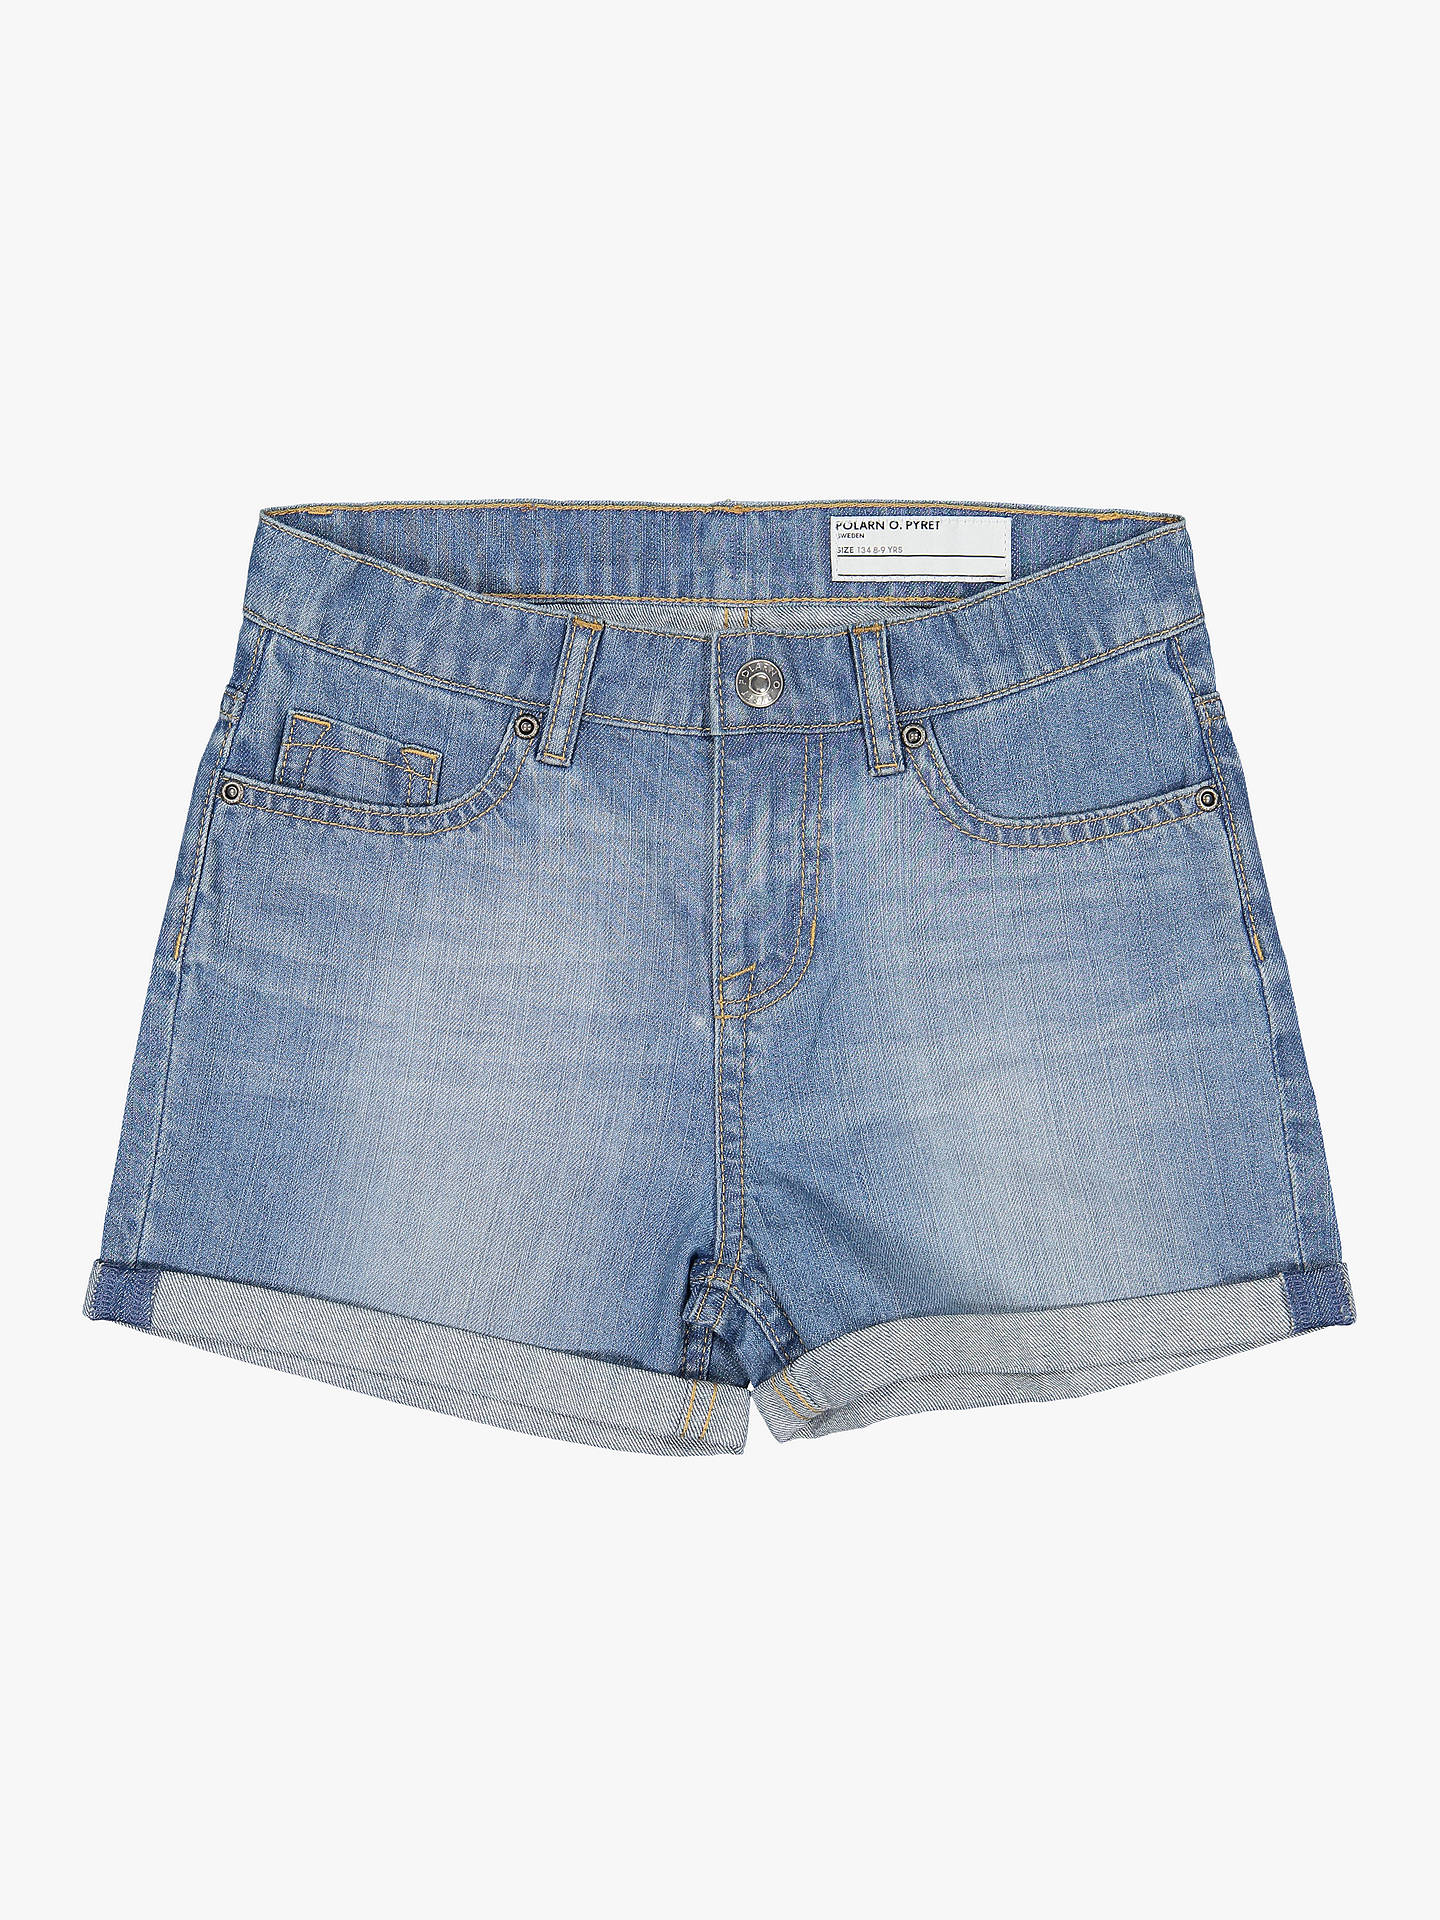 3efb9cf6413c Buy Polarn O. Pyret Children's Denim Shorts, Blue, 6-7 years Online ...